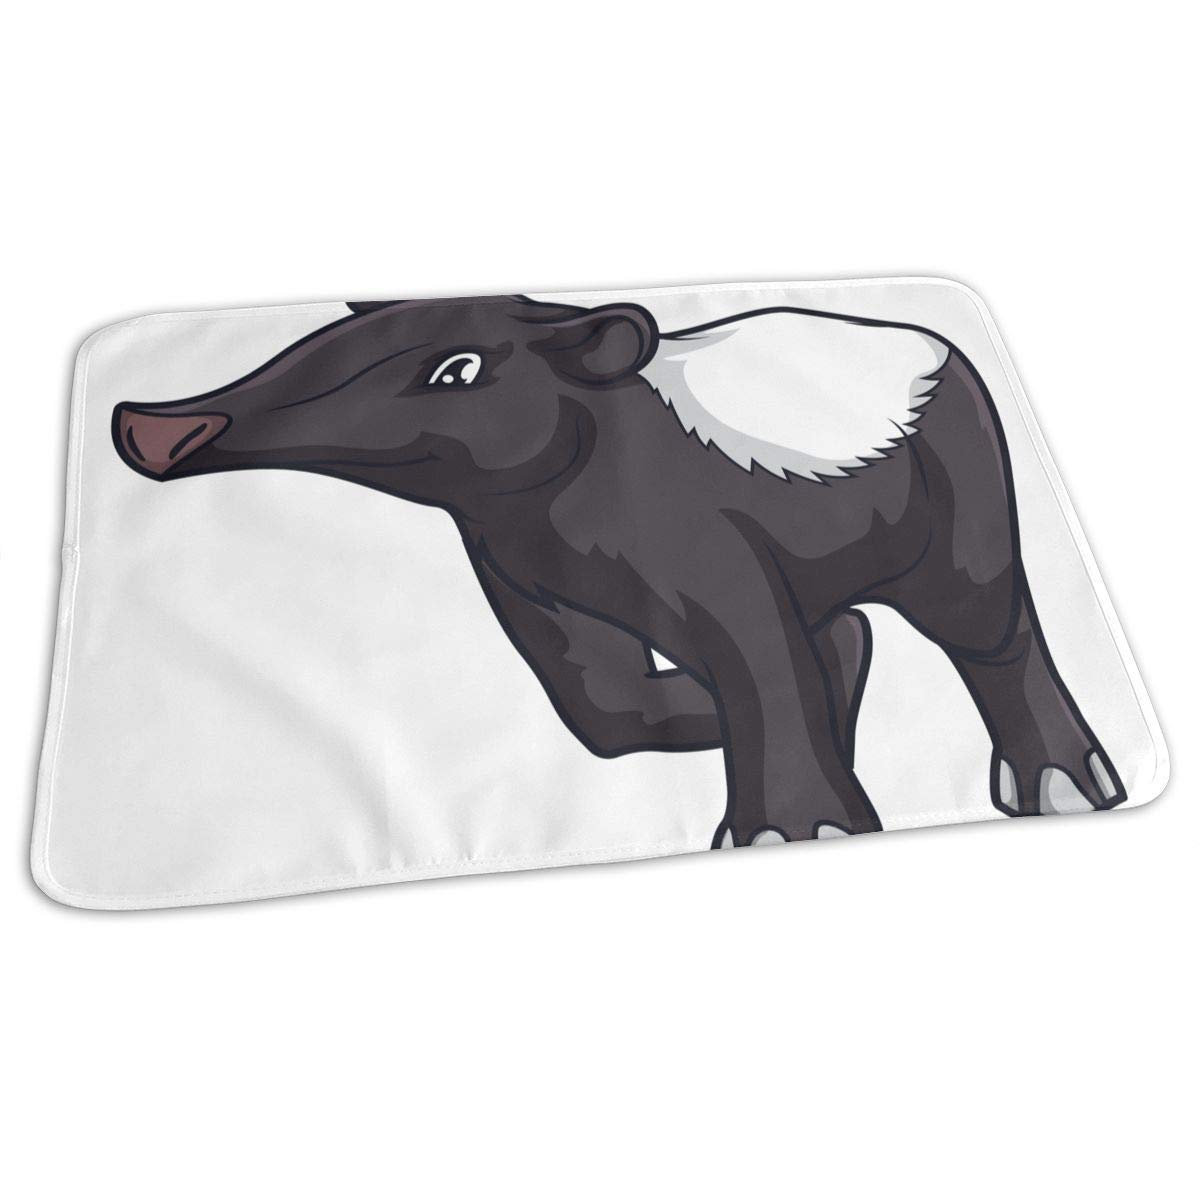 Voxpkrs Changing Pad Tapir Baby Diaper Urine Pad Mat Fantastic Adults Bed Wetting Pads Sheet for Any Places for Home Travel Bed Play Stroller Crib Car